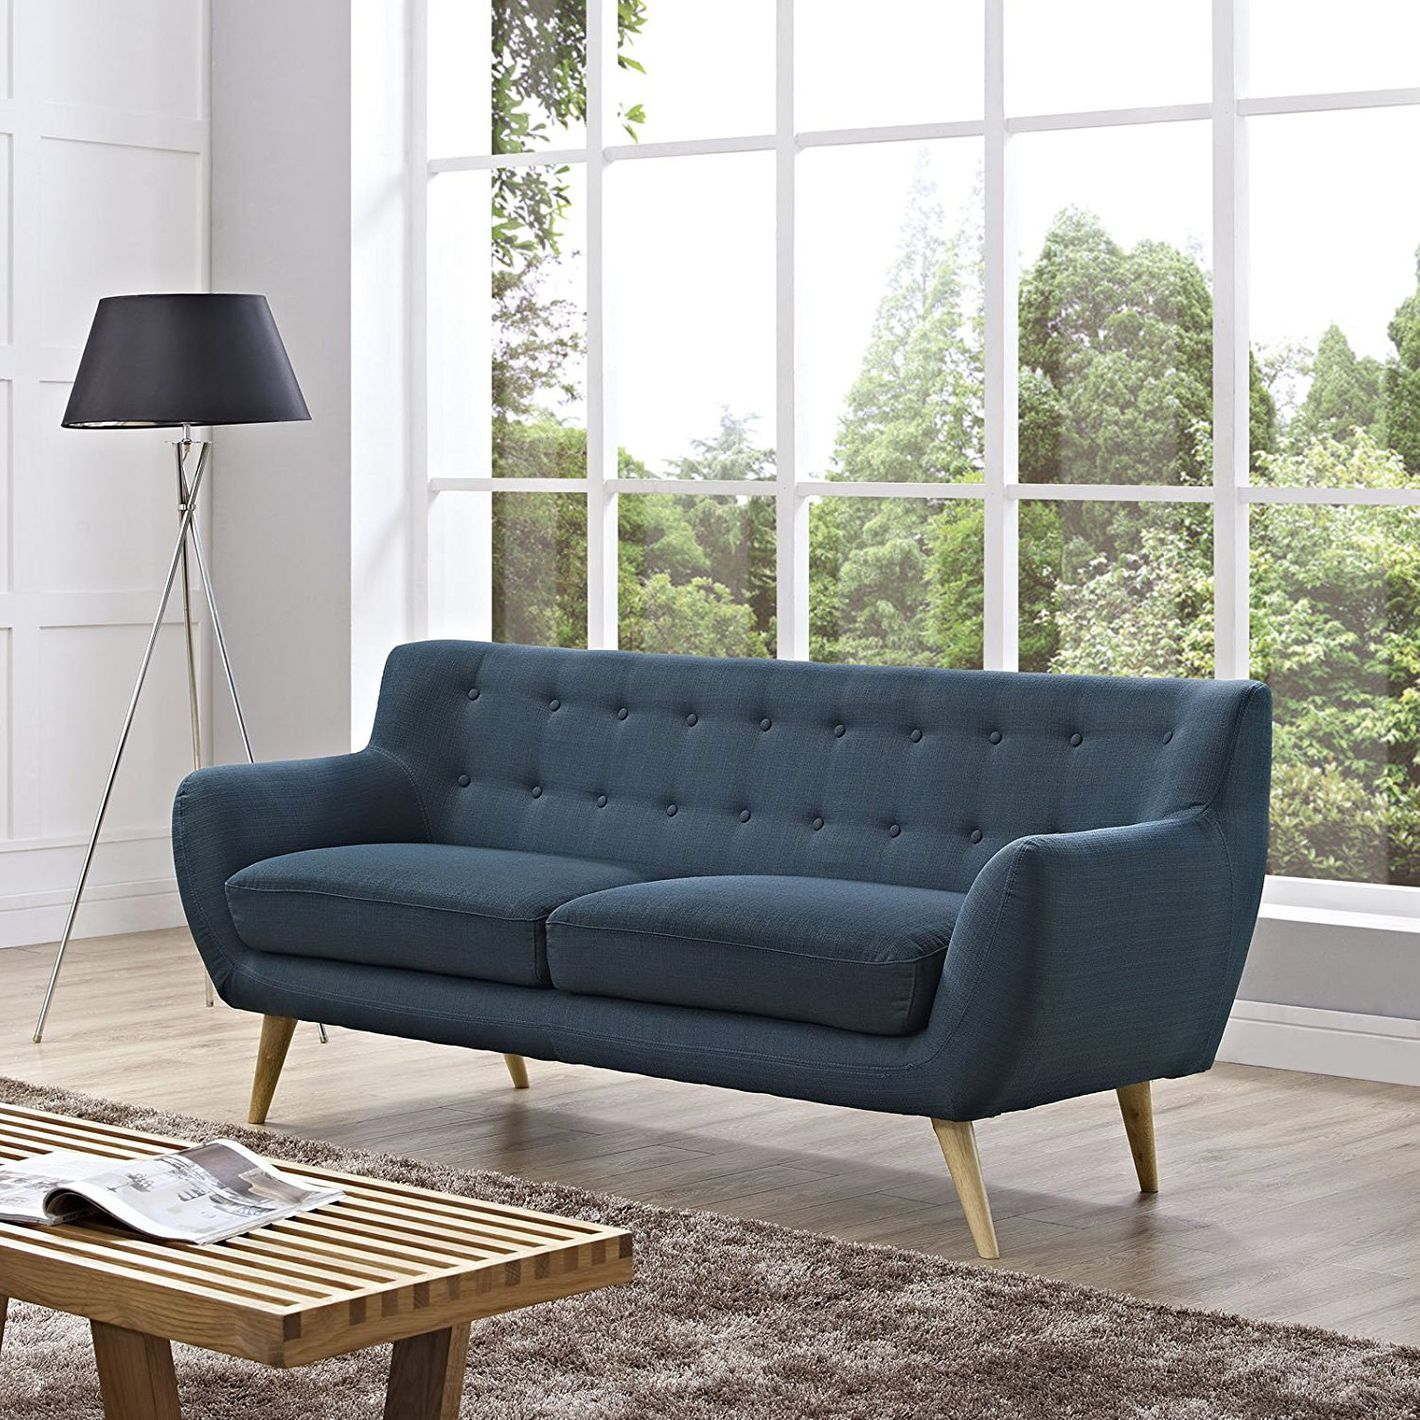 The Best Sofas Under 500 Modway Remark